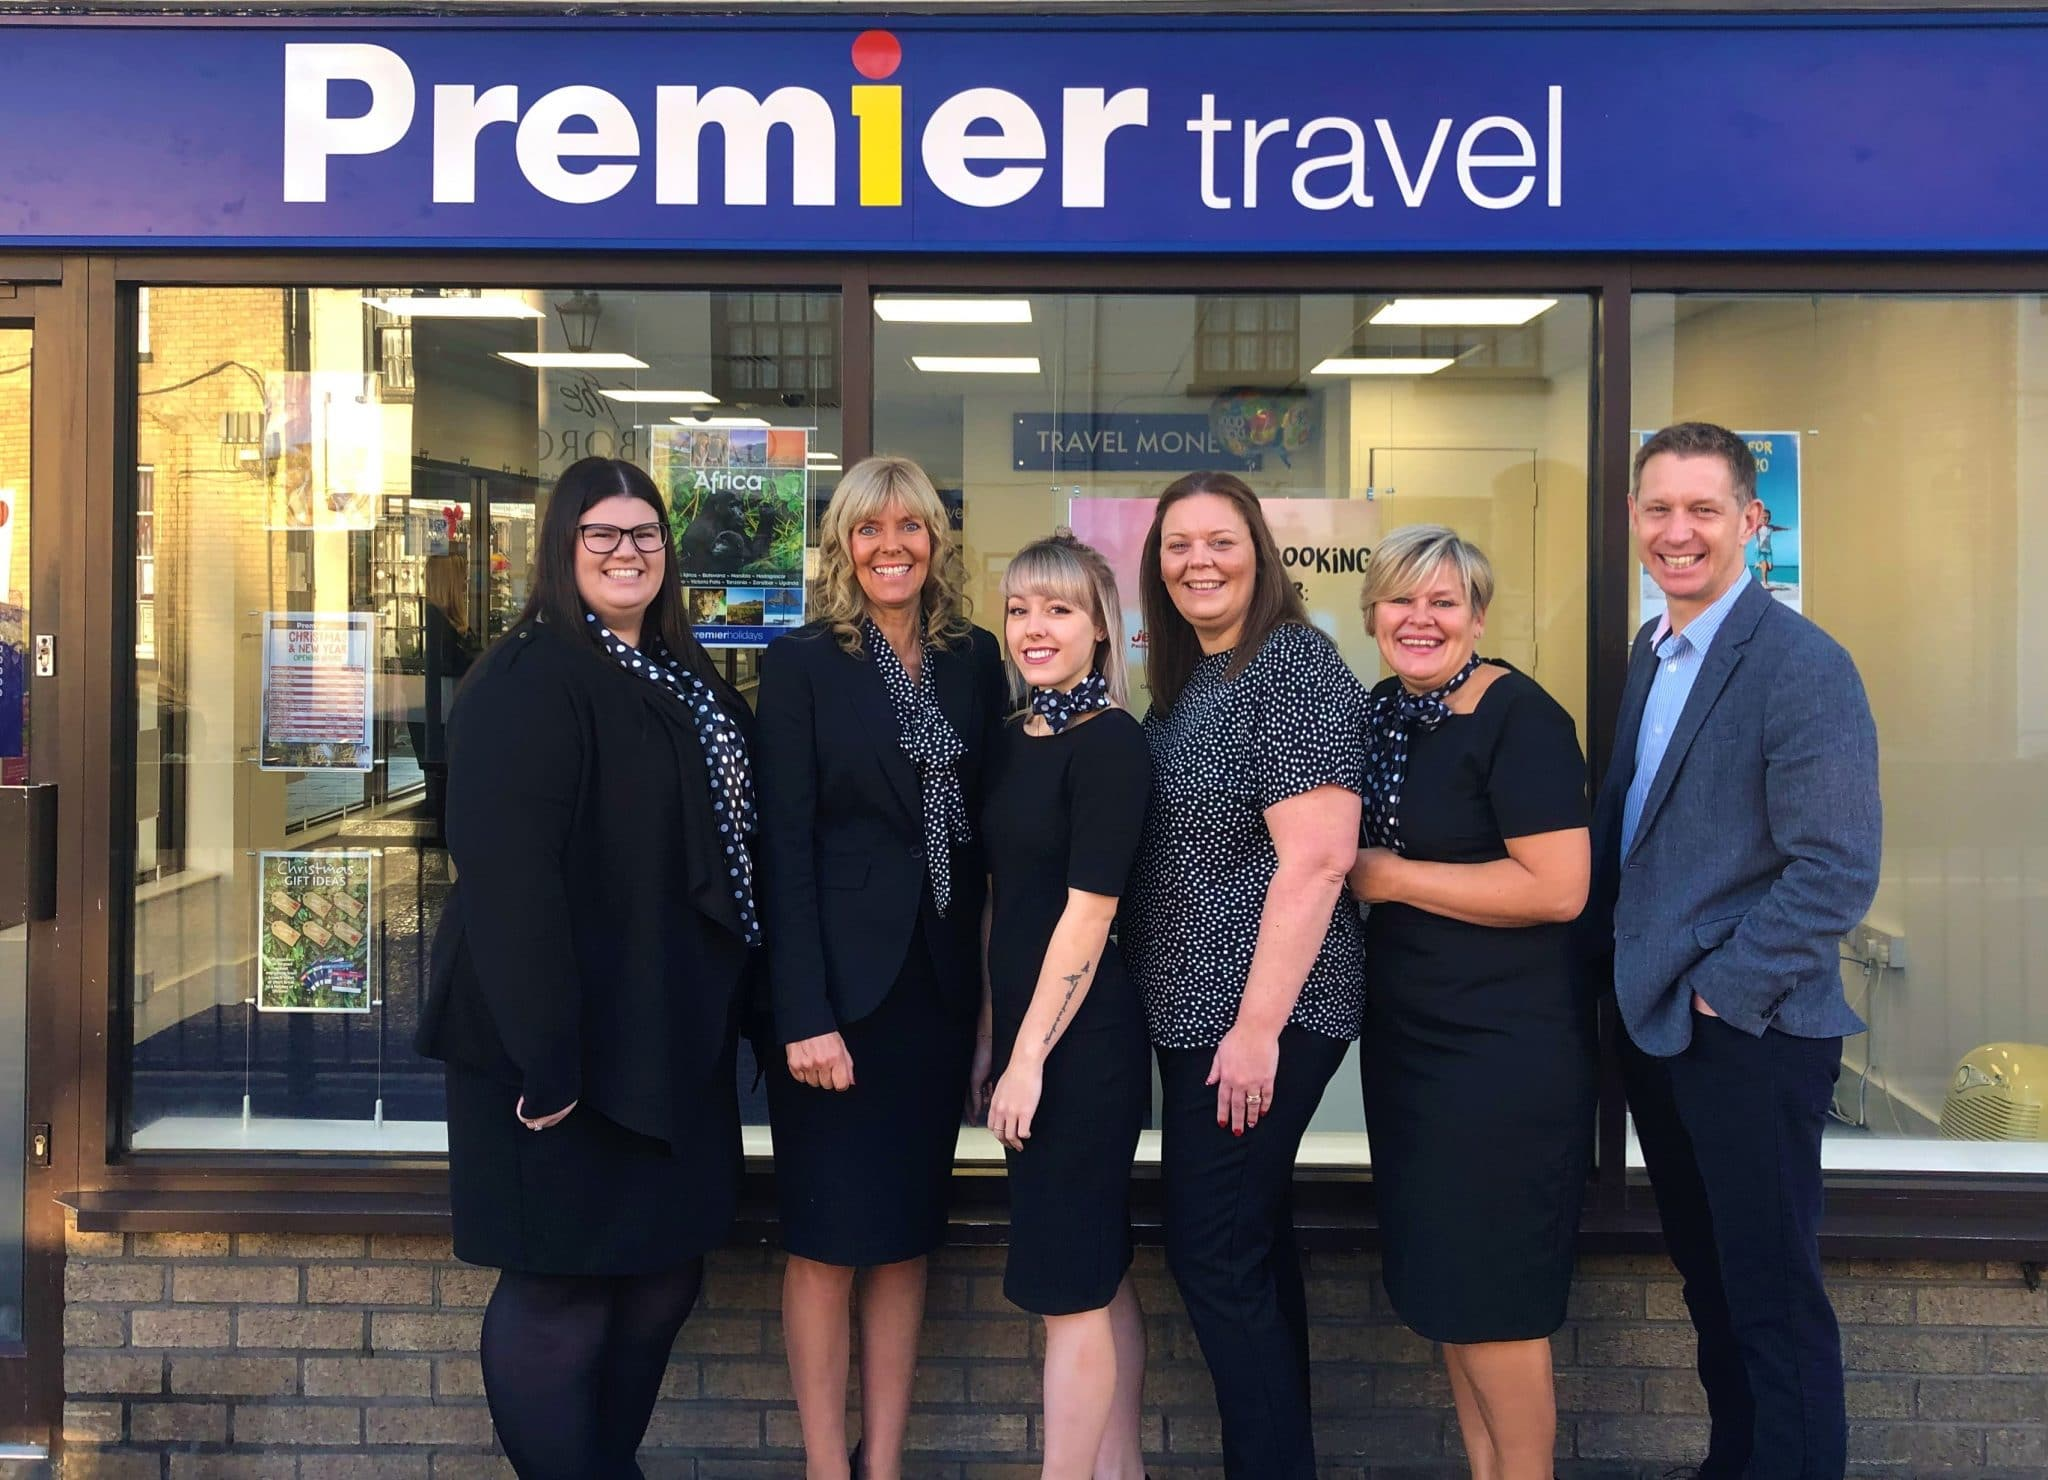 New Premier Travel branch in Sudbury hires Thomas Cook staff